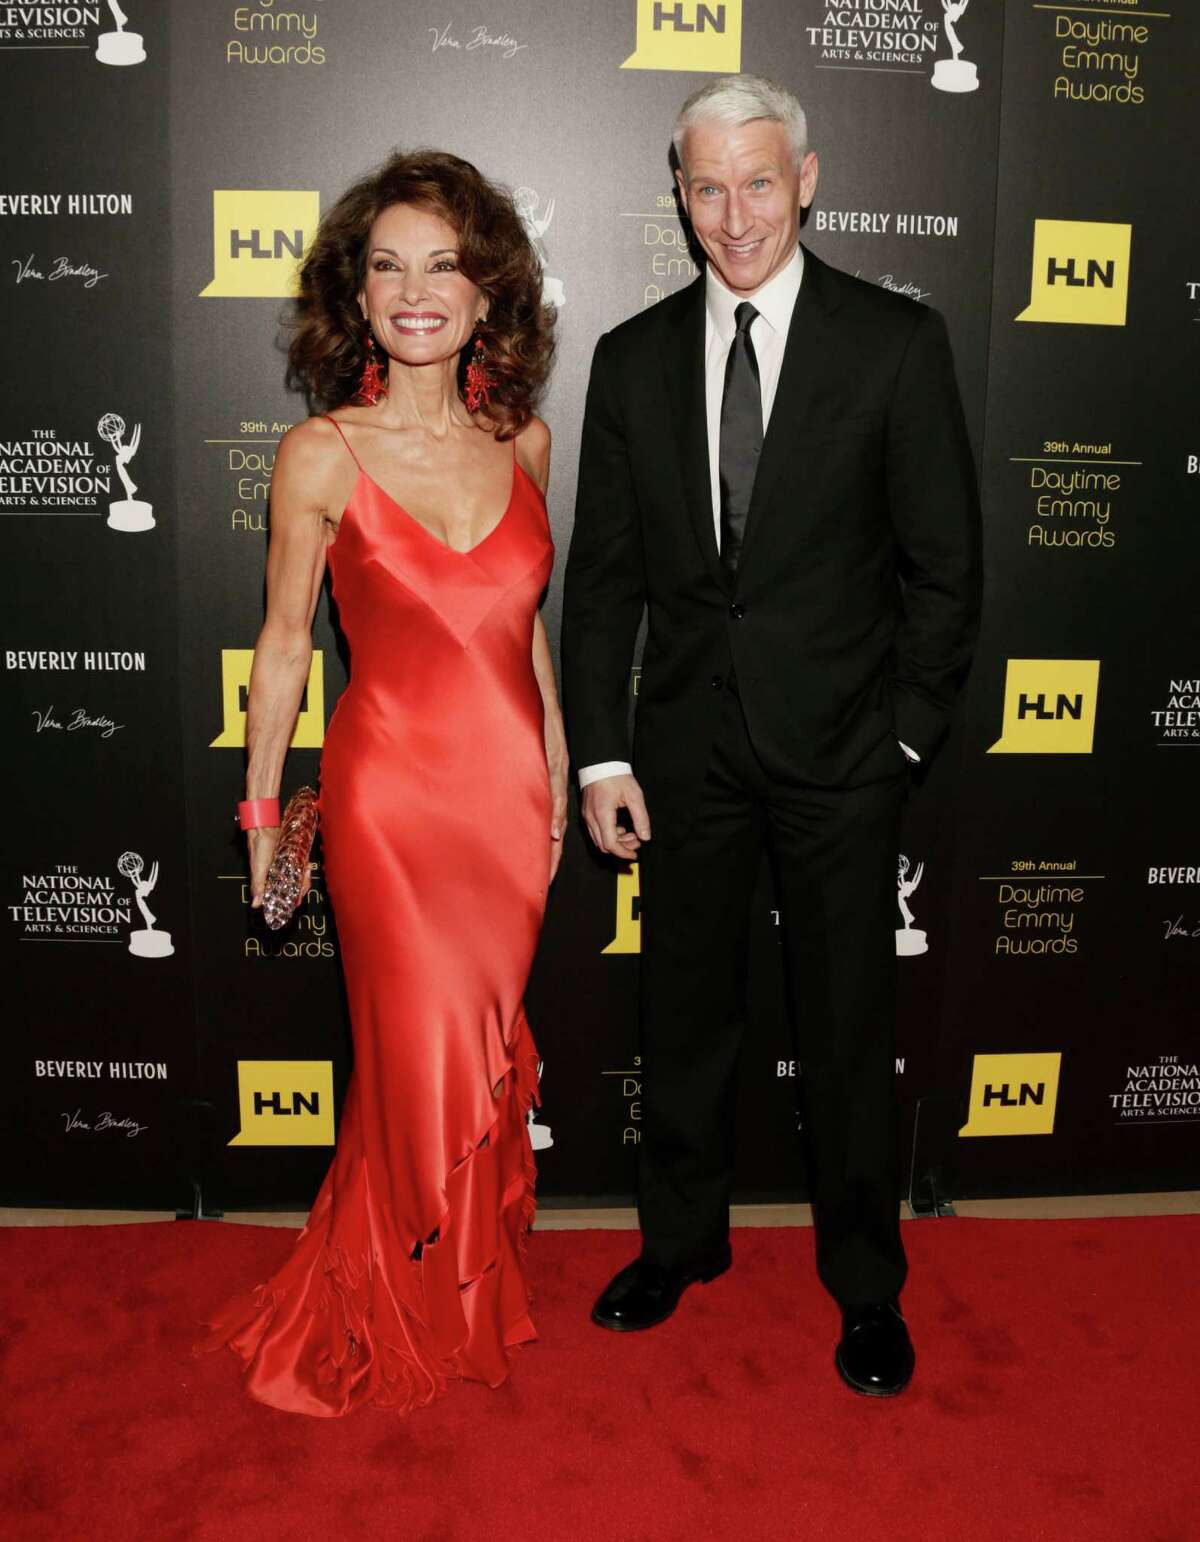 Susan Lucci, left, and Anderson Cooper arrive.